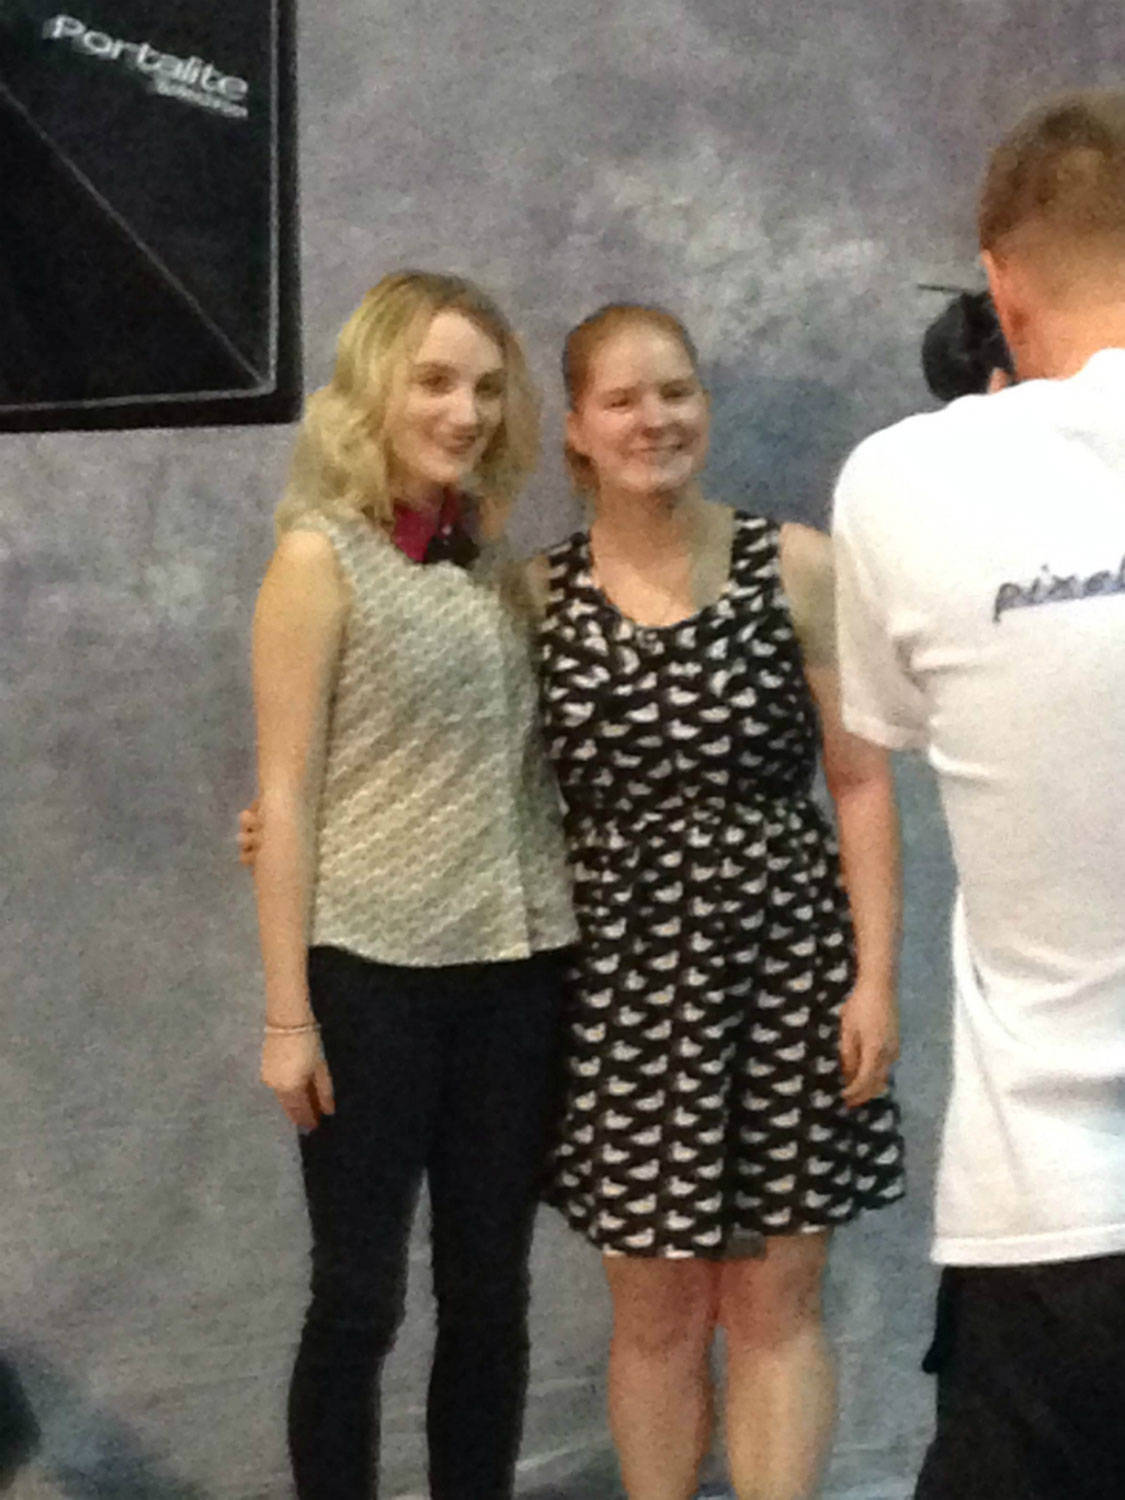 Armageddon Expo 2013 Auckland – Oct 27 – Evanna Lynch Photo Session – 5 (Photo credit: Tracey Wong)